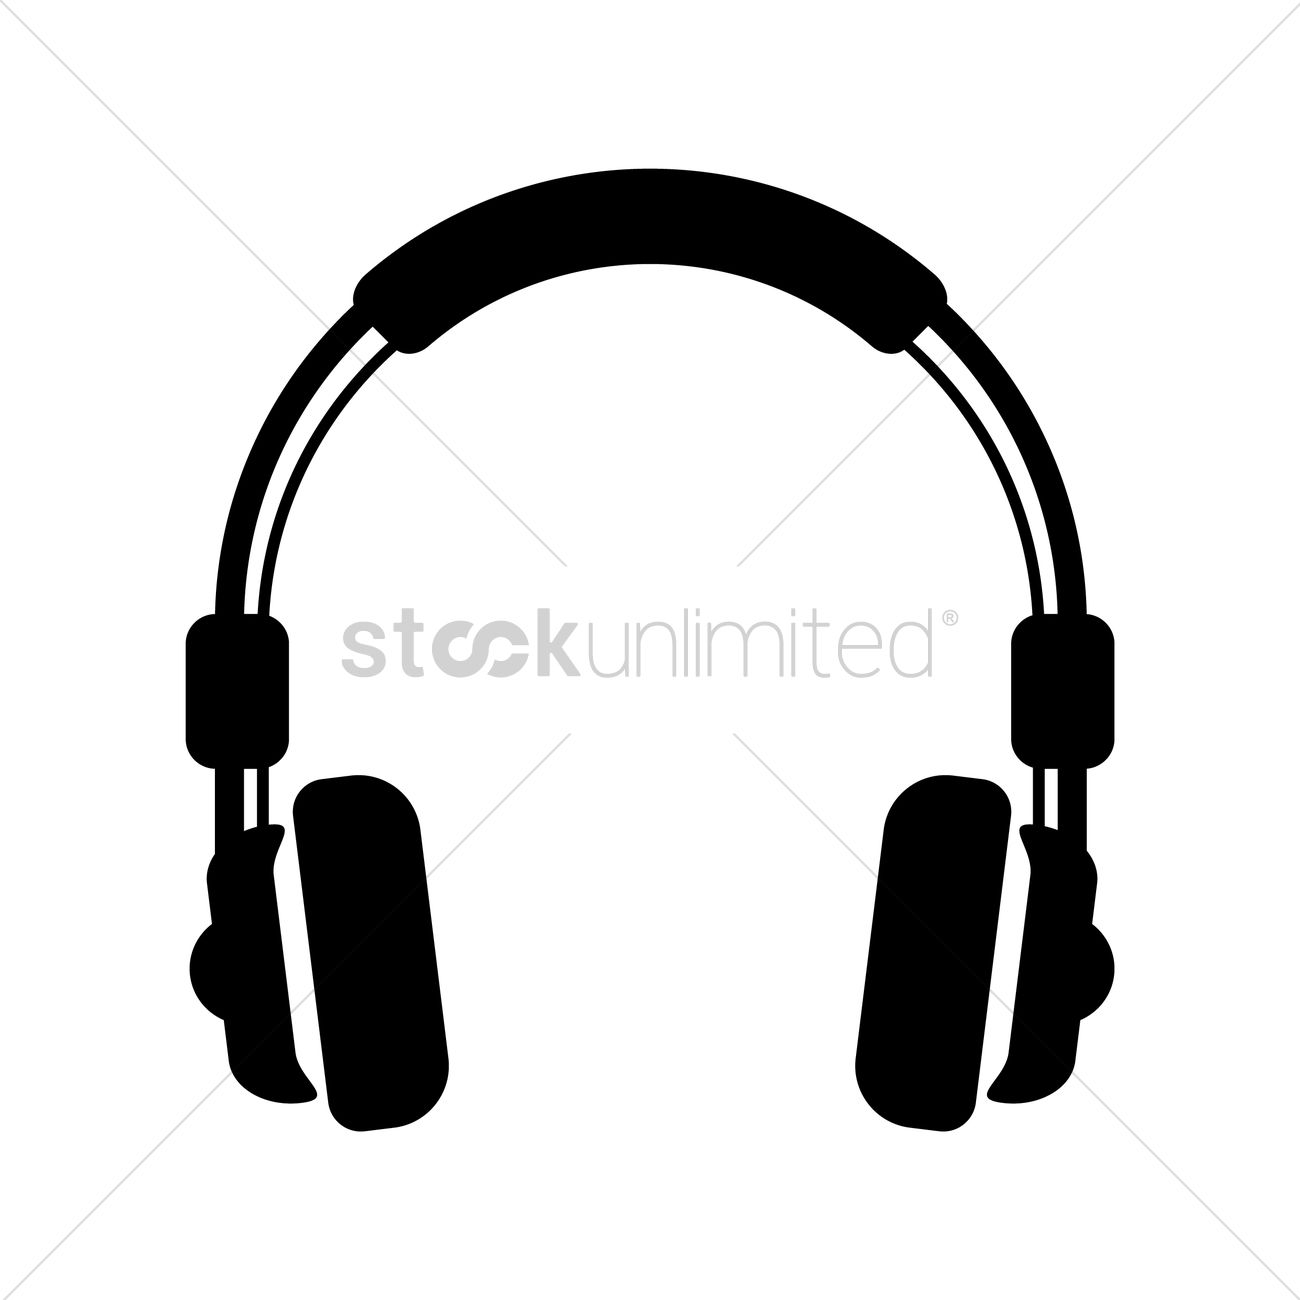 headphones vector image 1529272 stockunlimited rh stockunlimited com headphones vector art headphones vector graphic